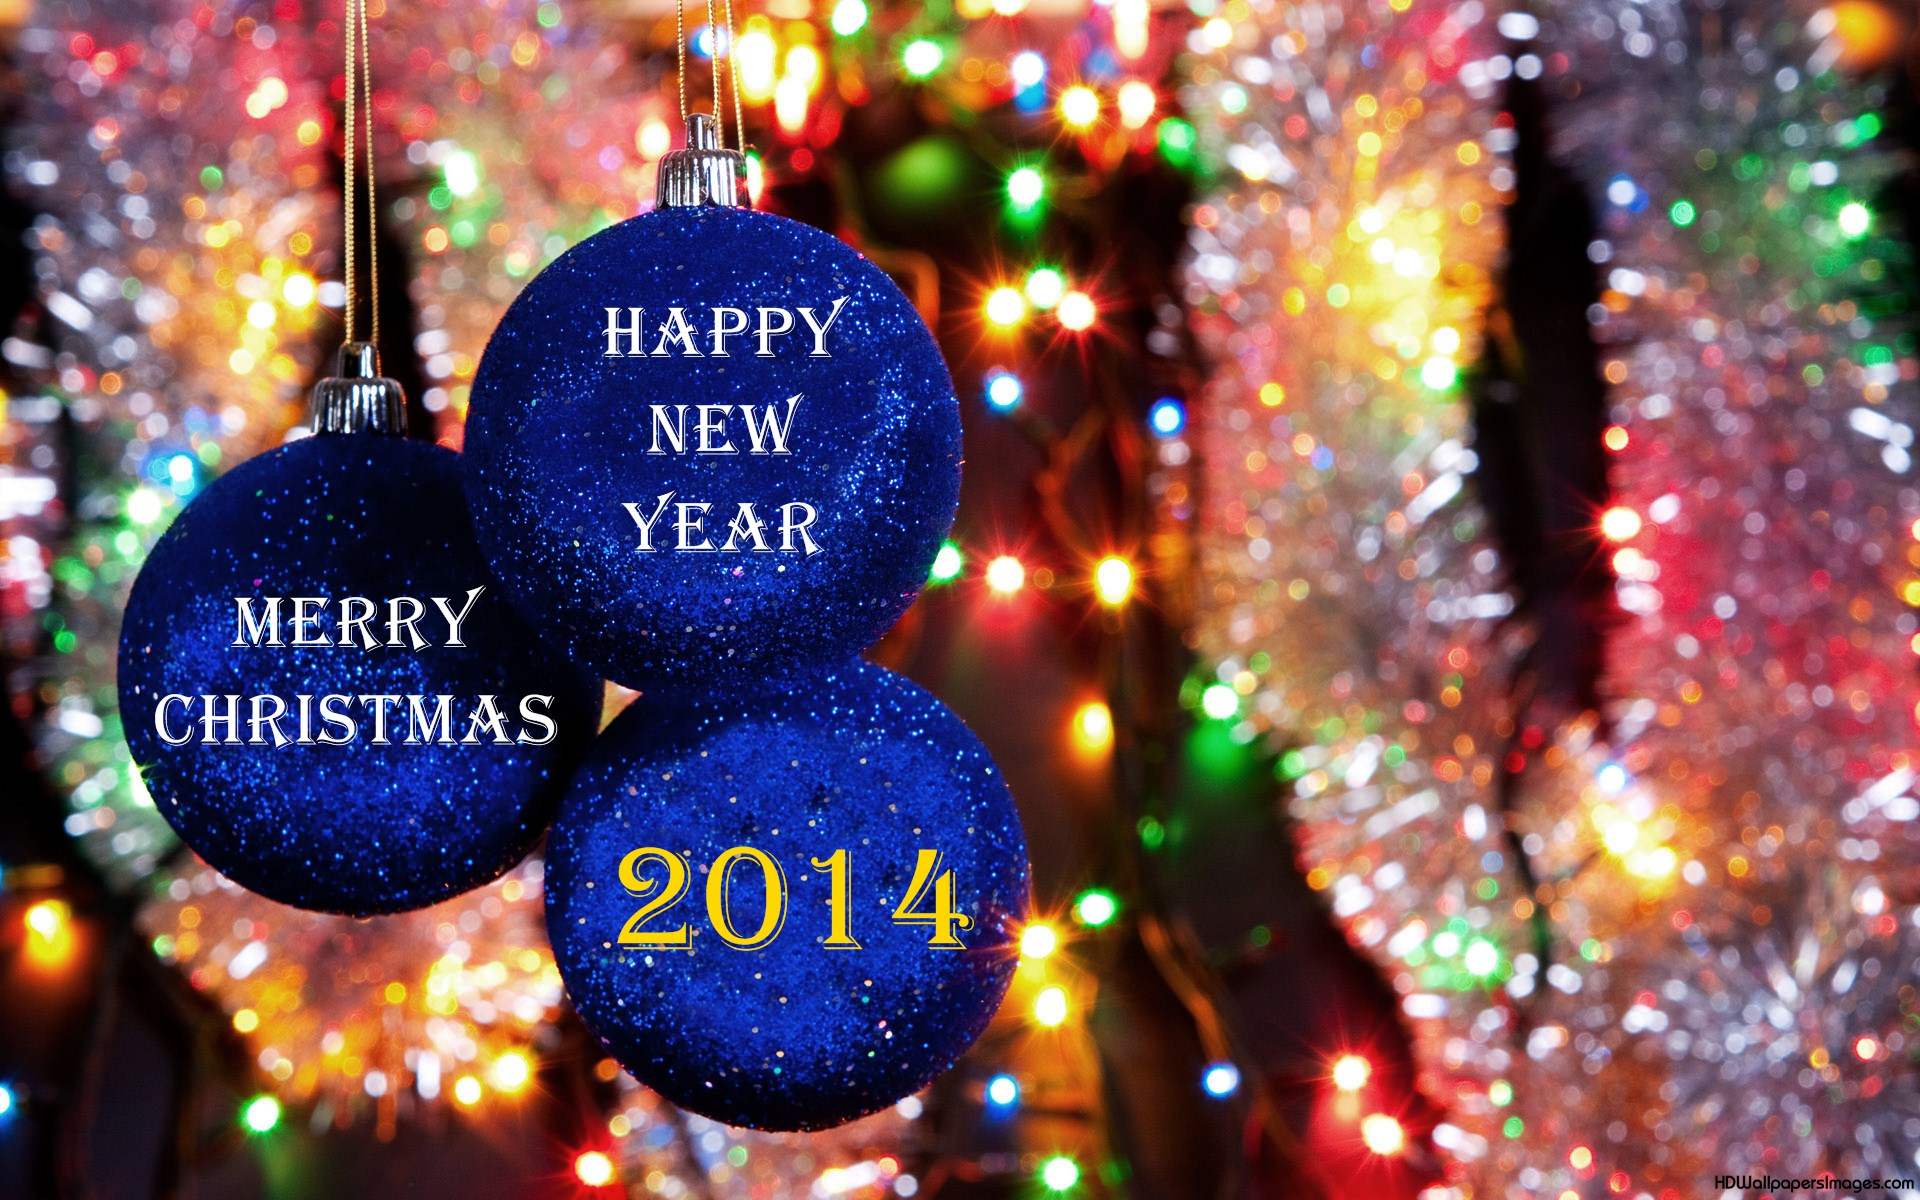 Happy new year 2014 vijays best new year images hem hd wallpapers arena voltagebd Gallery